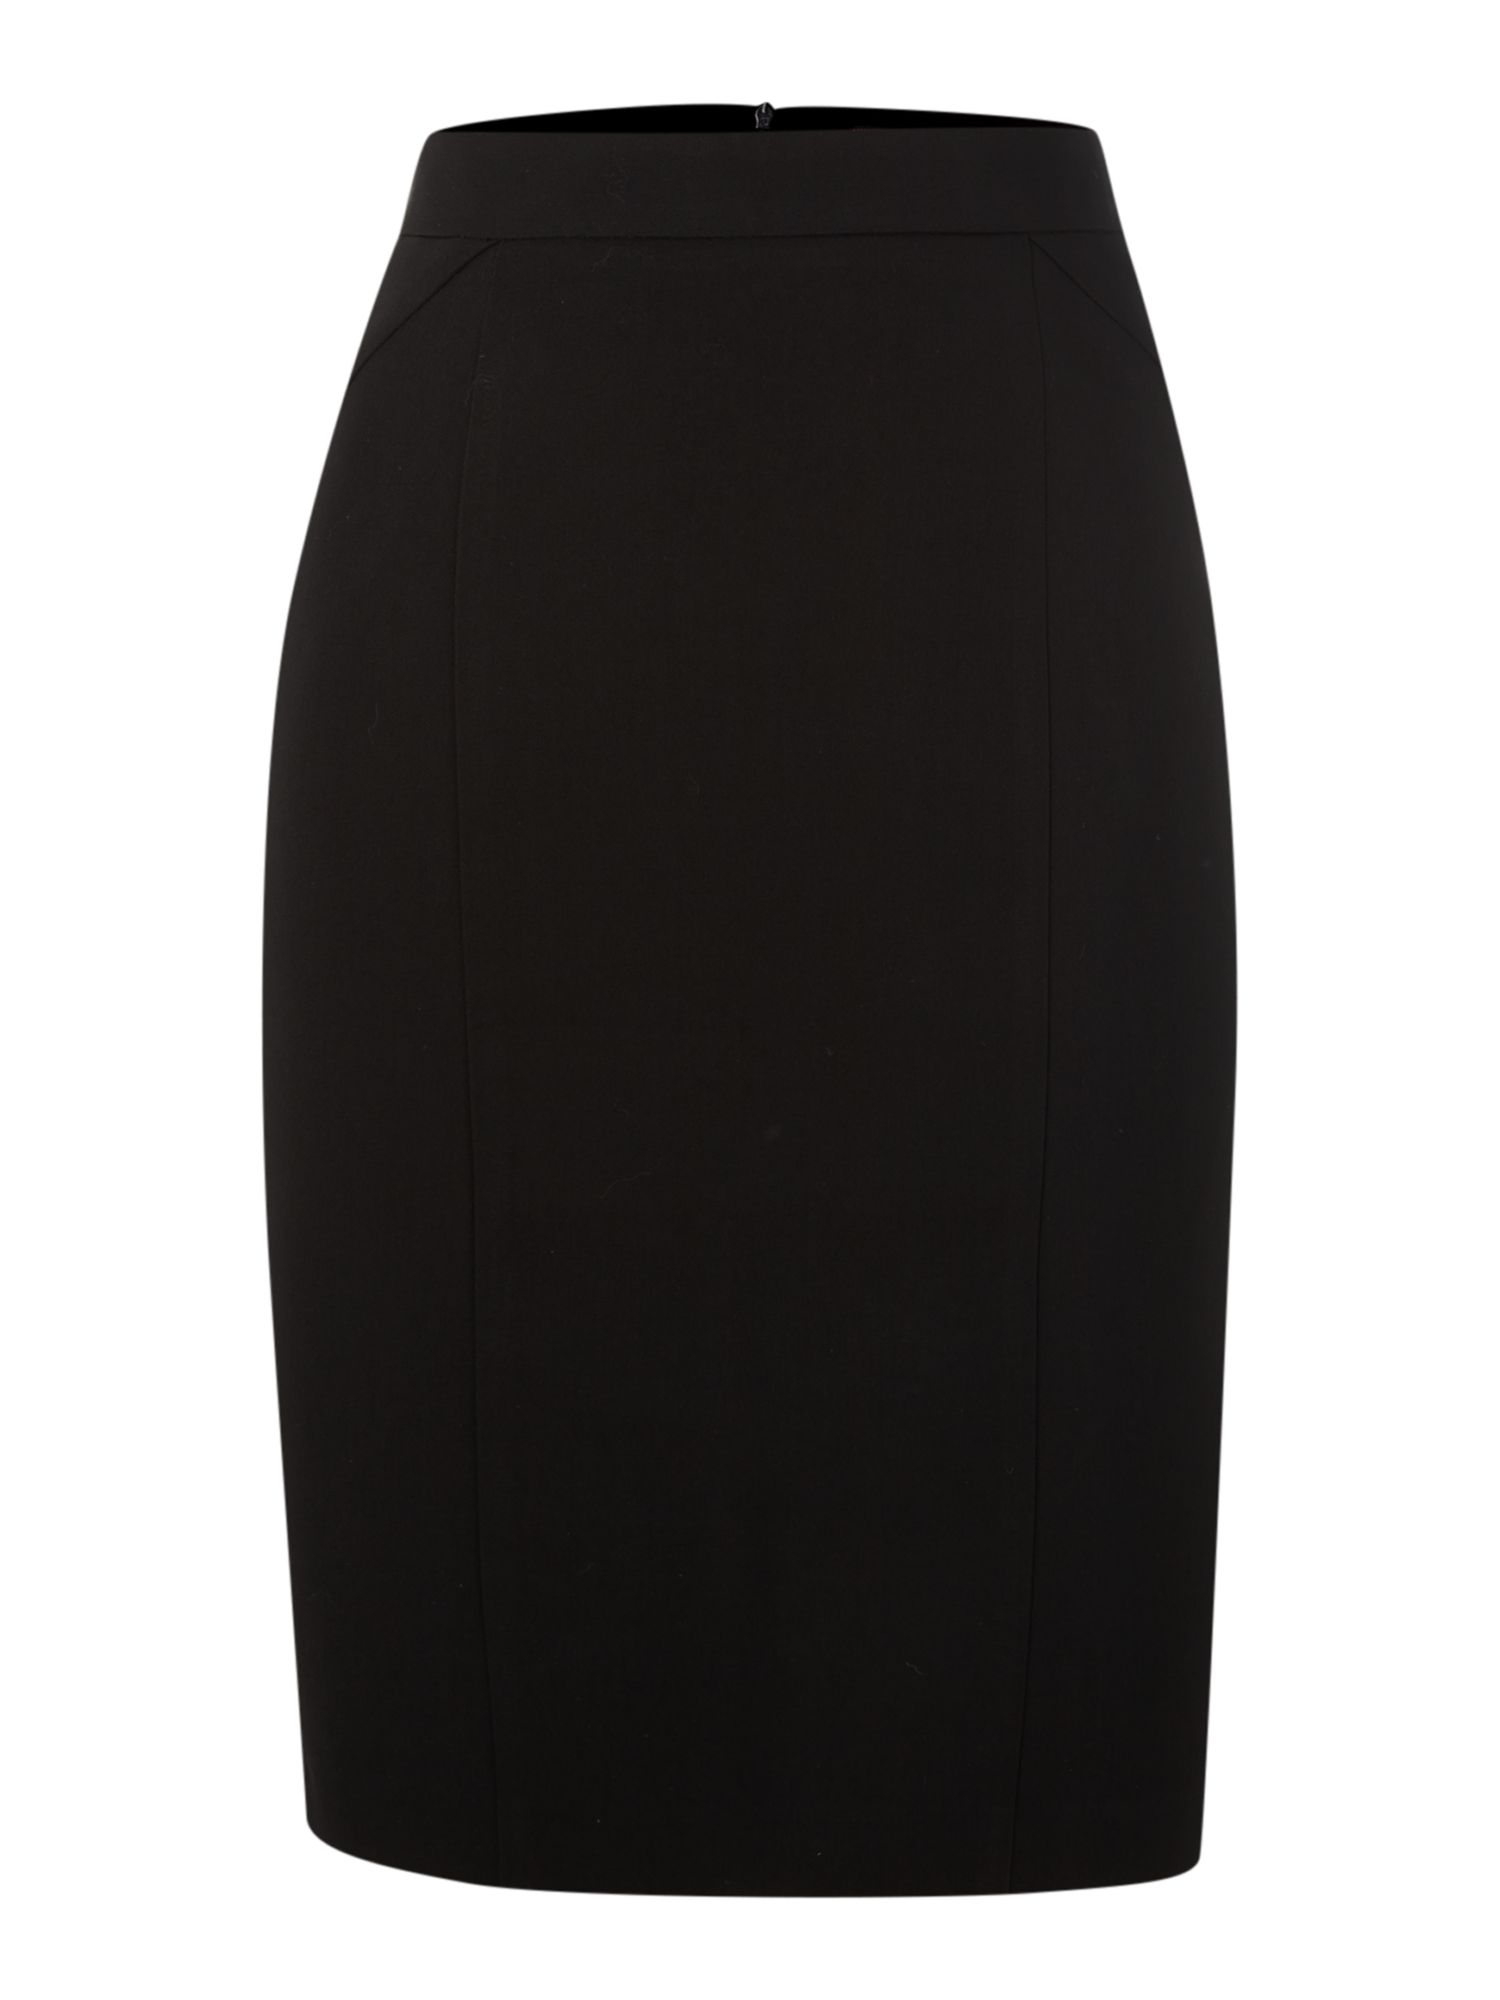 Tailored work wear skirt